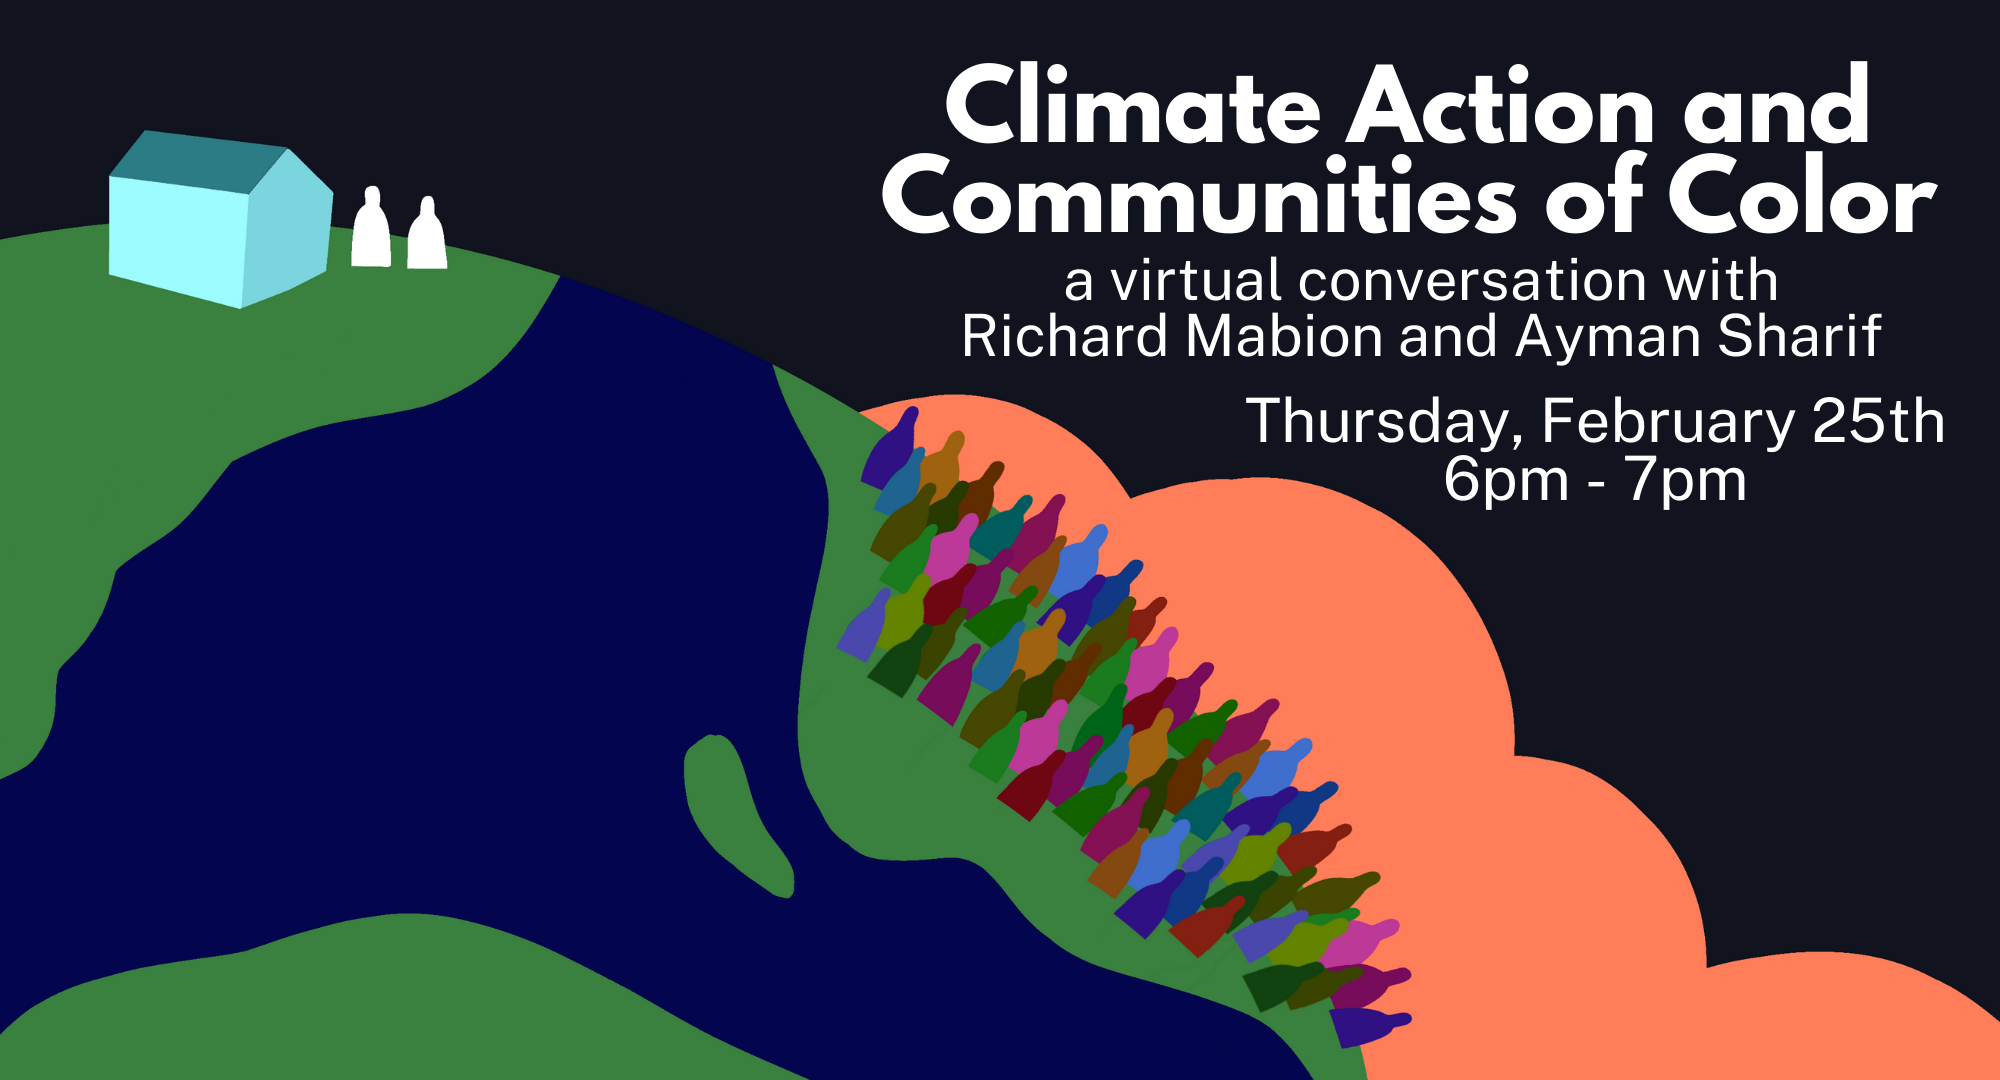 A groups for the Climate Action and Communities of Color event.